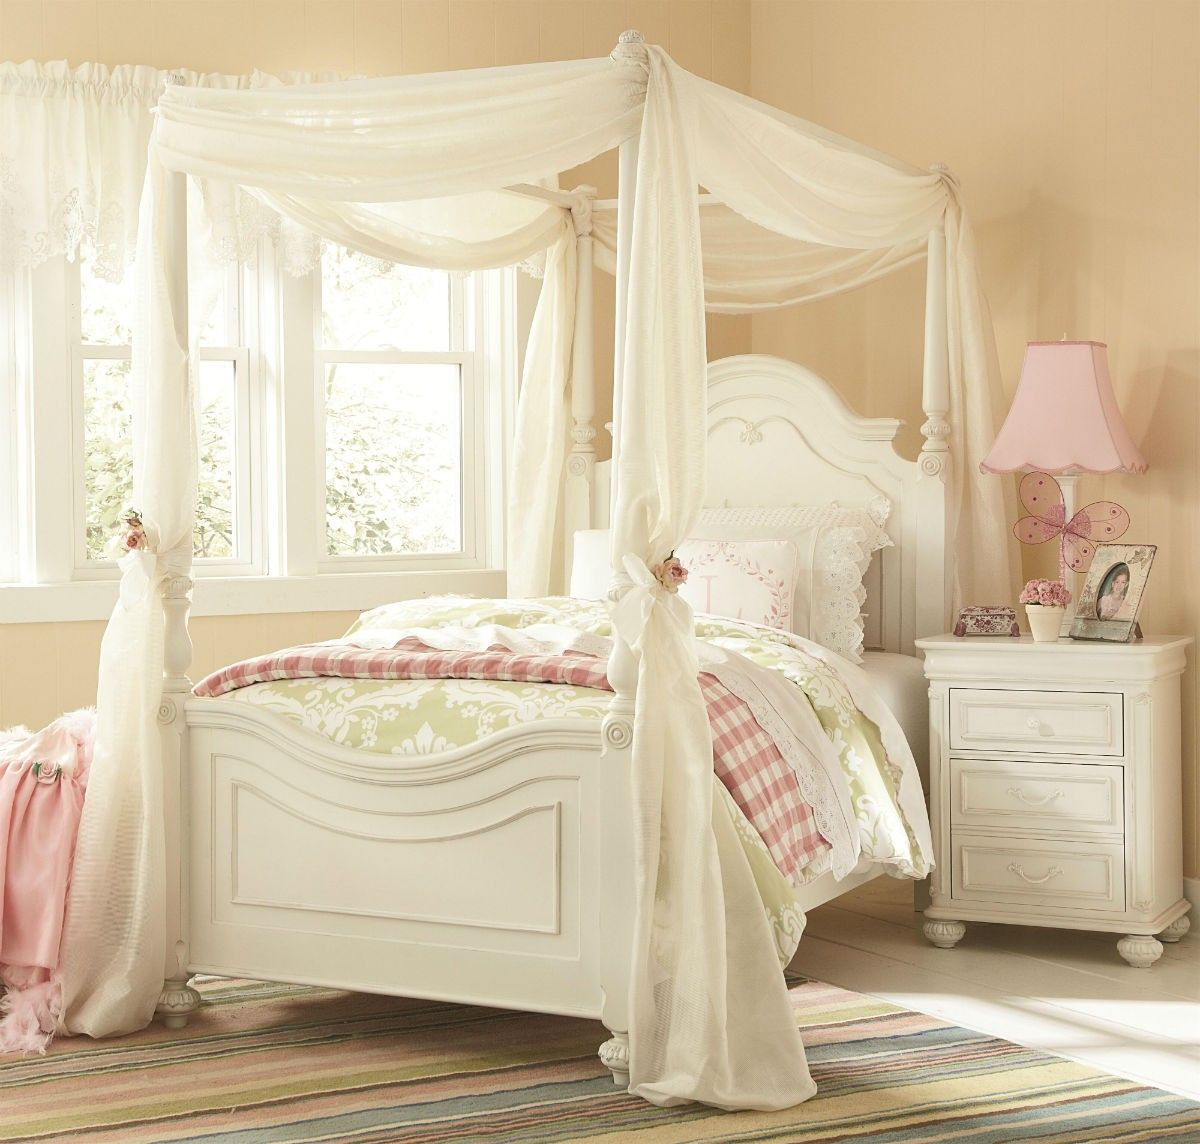 Stanley Furniture Childrens Bedroom Sets - Interior Design Bedroom ...